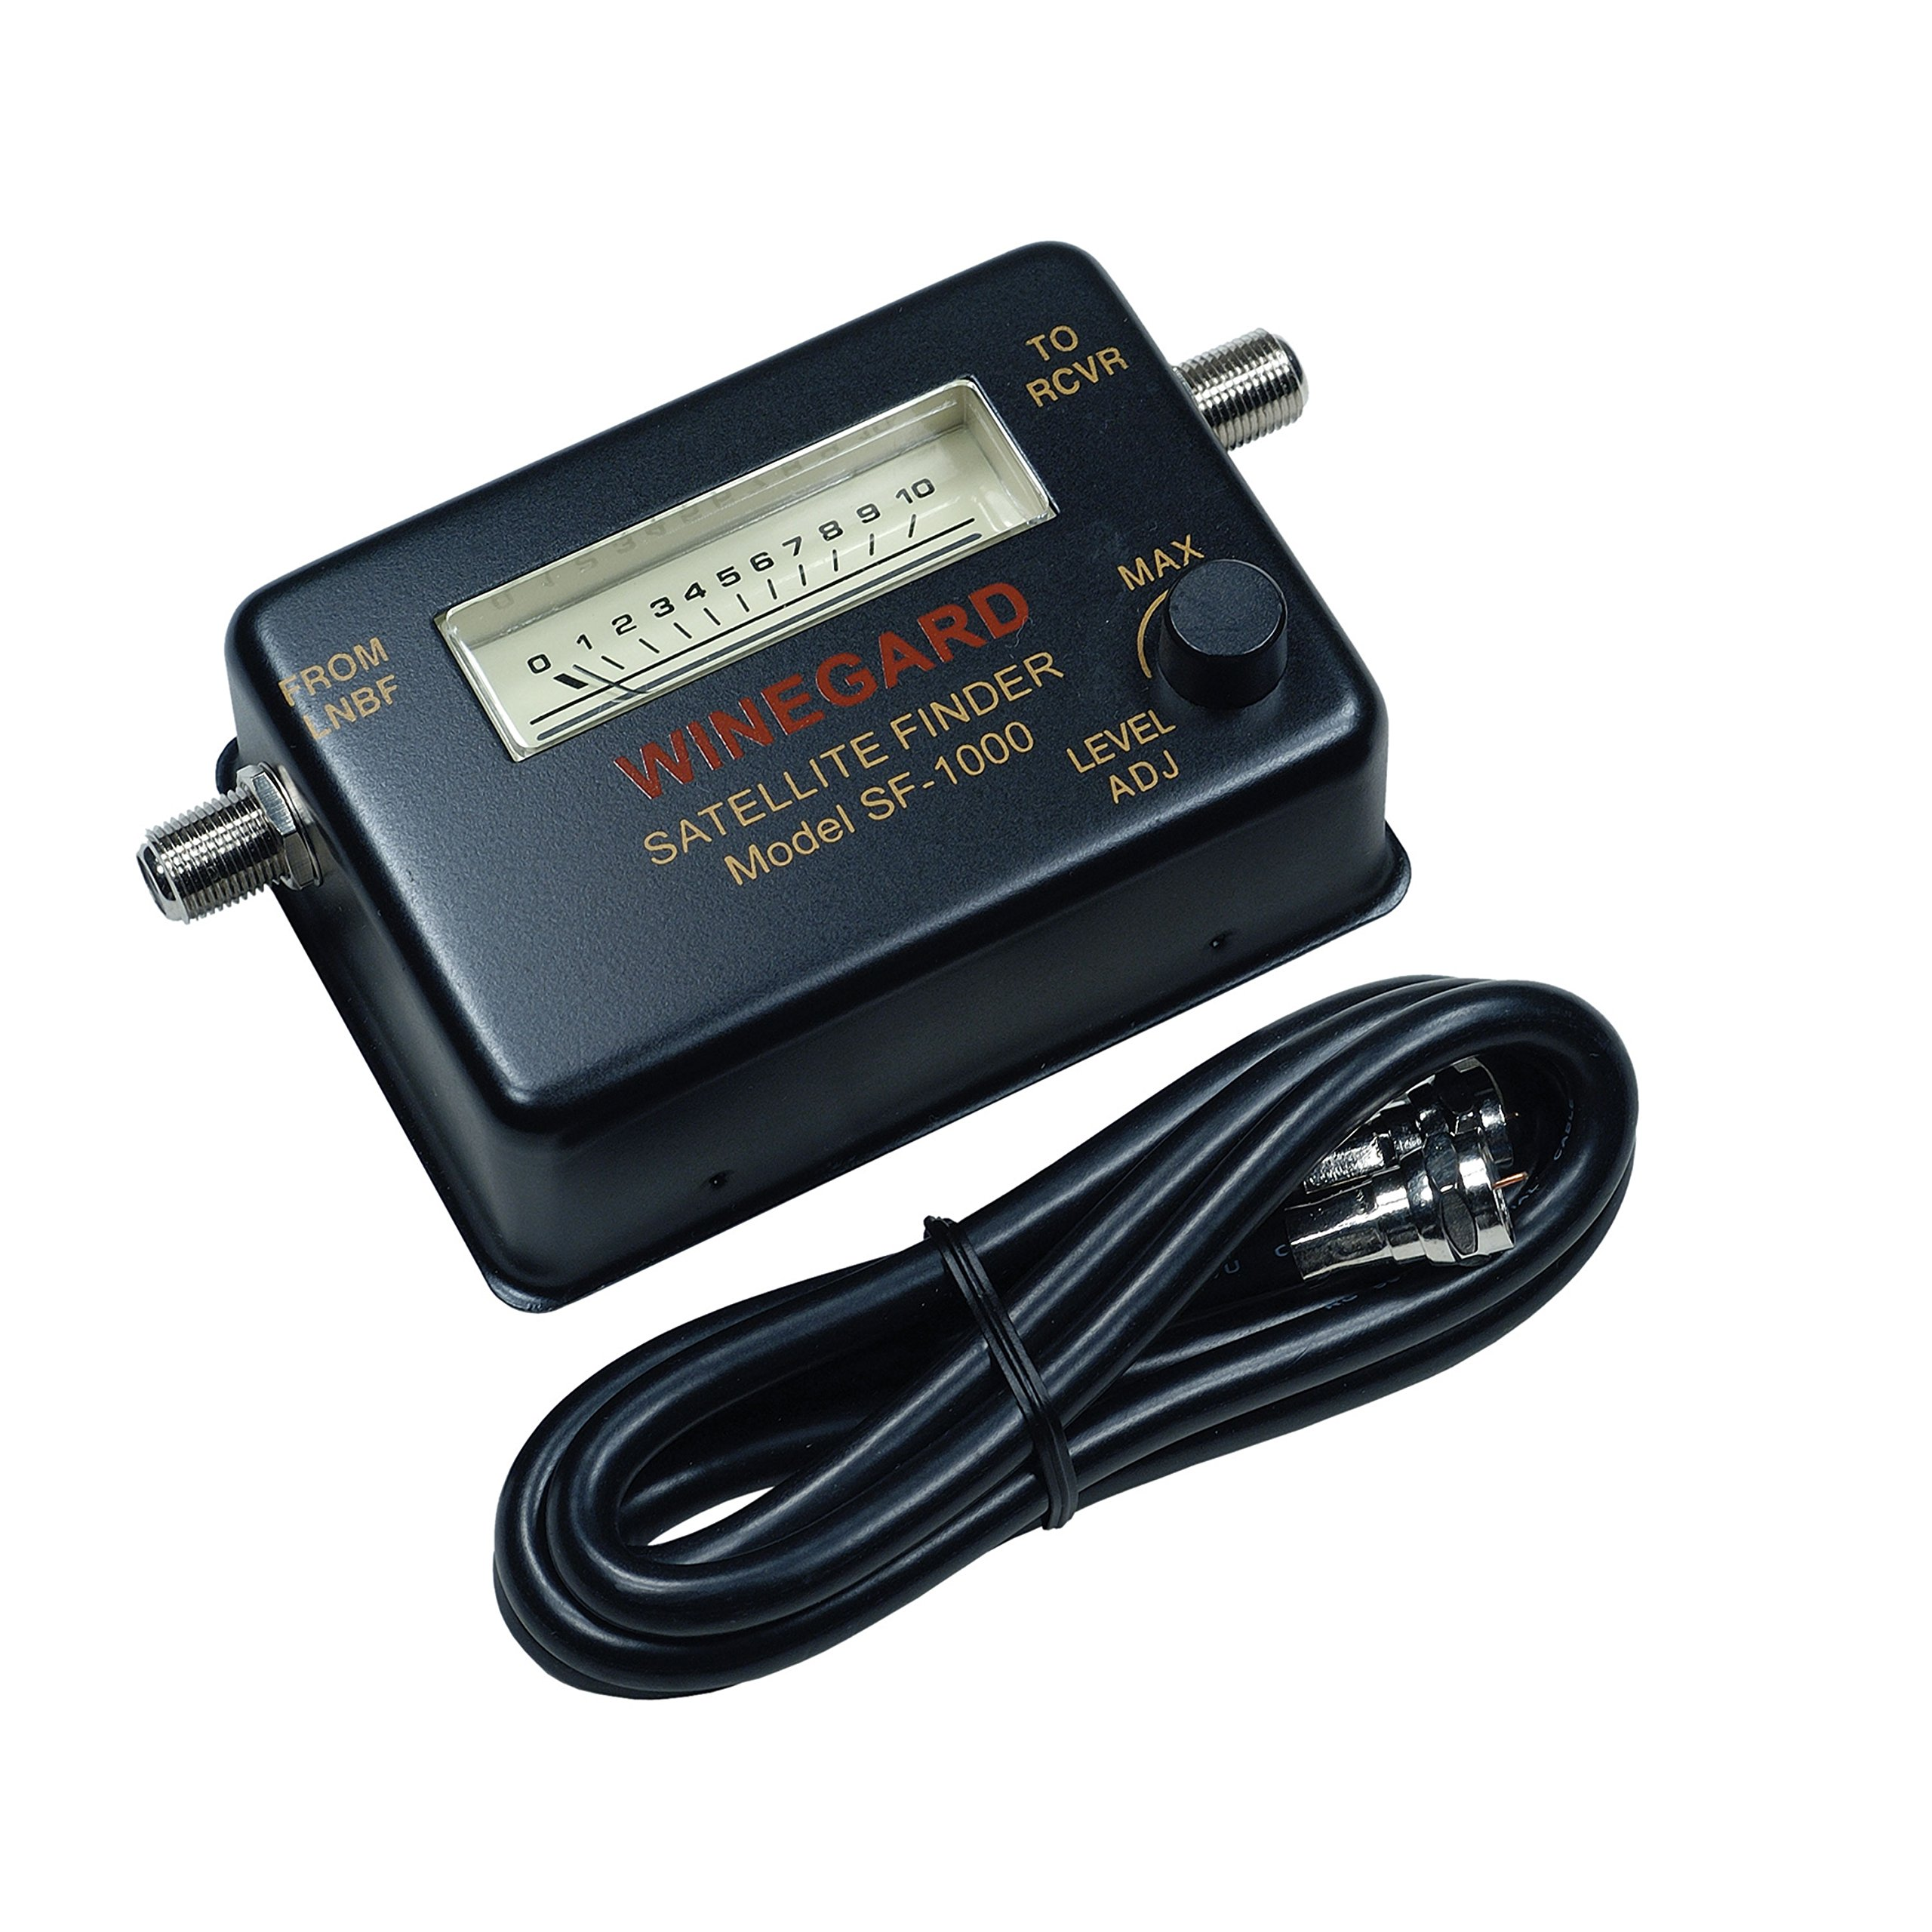 Winegard SF-1000 Satellite Finder Meter by Winegard